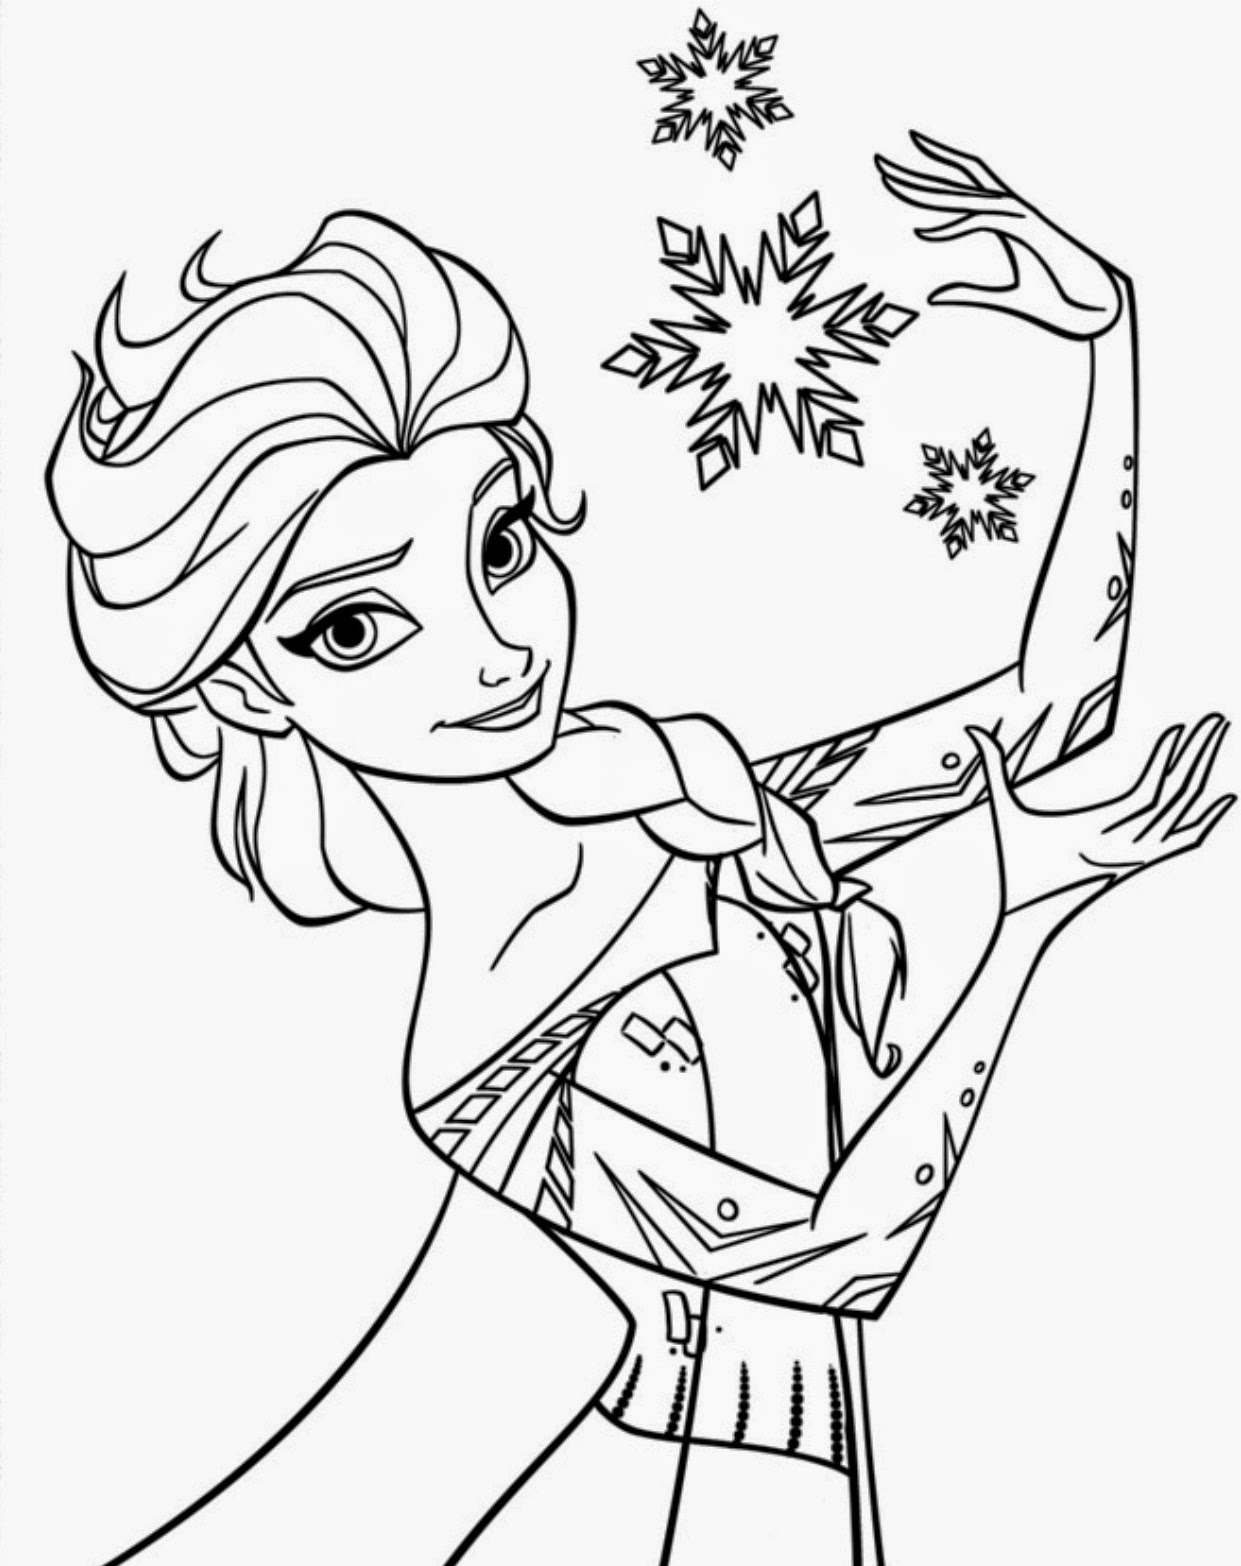 coloring pages frozen free printable frozen coloring pages for kids best coloring pages frozen